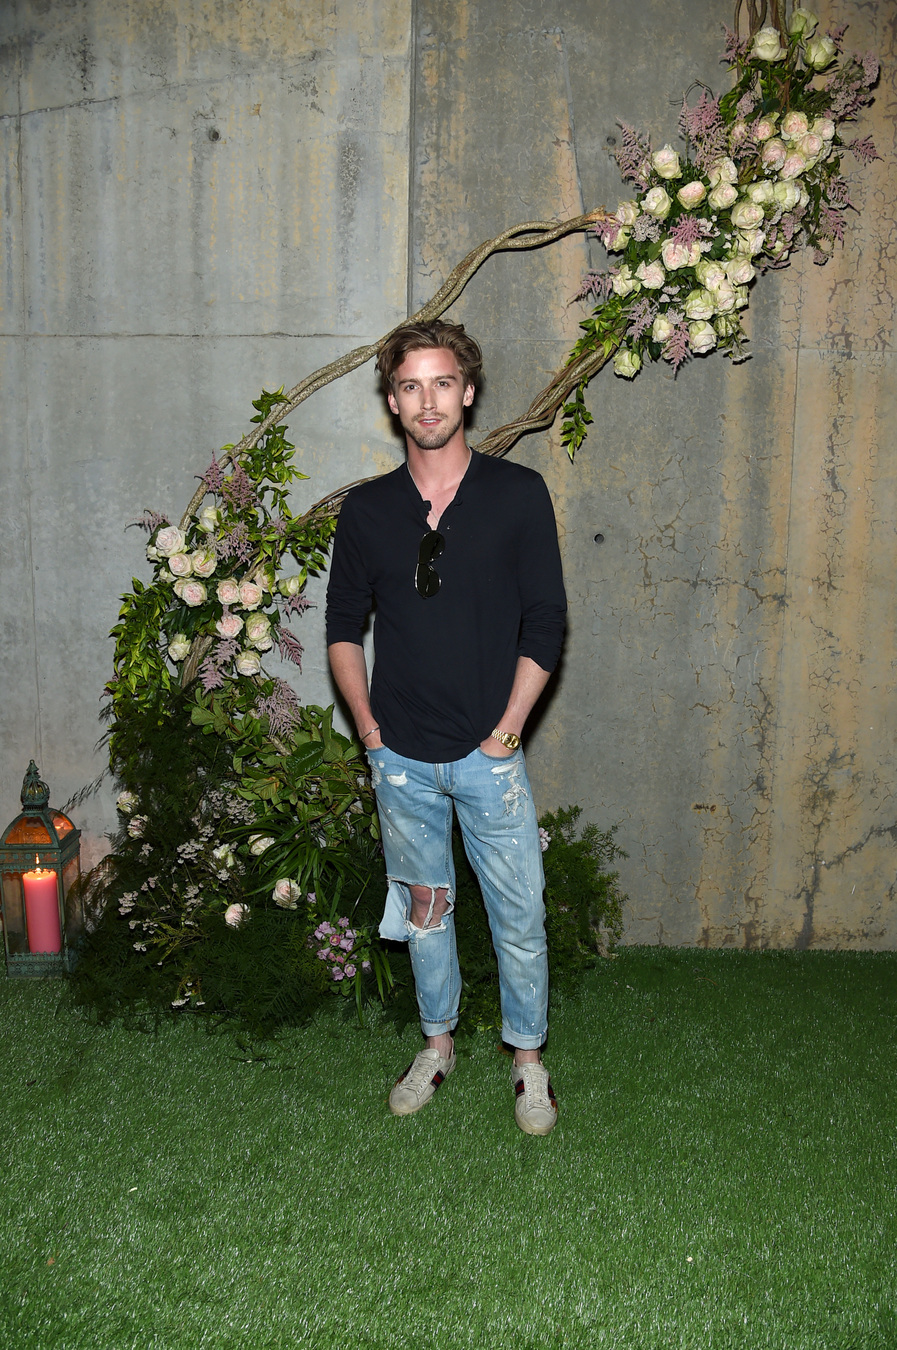 NEW YORK, NY - MAY 02: RJ King attends the Gucci Bloom Fragrance Launch at MoMA PS.1 on May 2, 2017 in New York City. (Photo by Jamie McCarthy/Getty Images for Gucci)